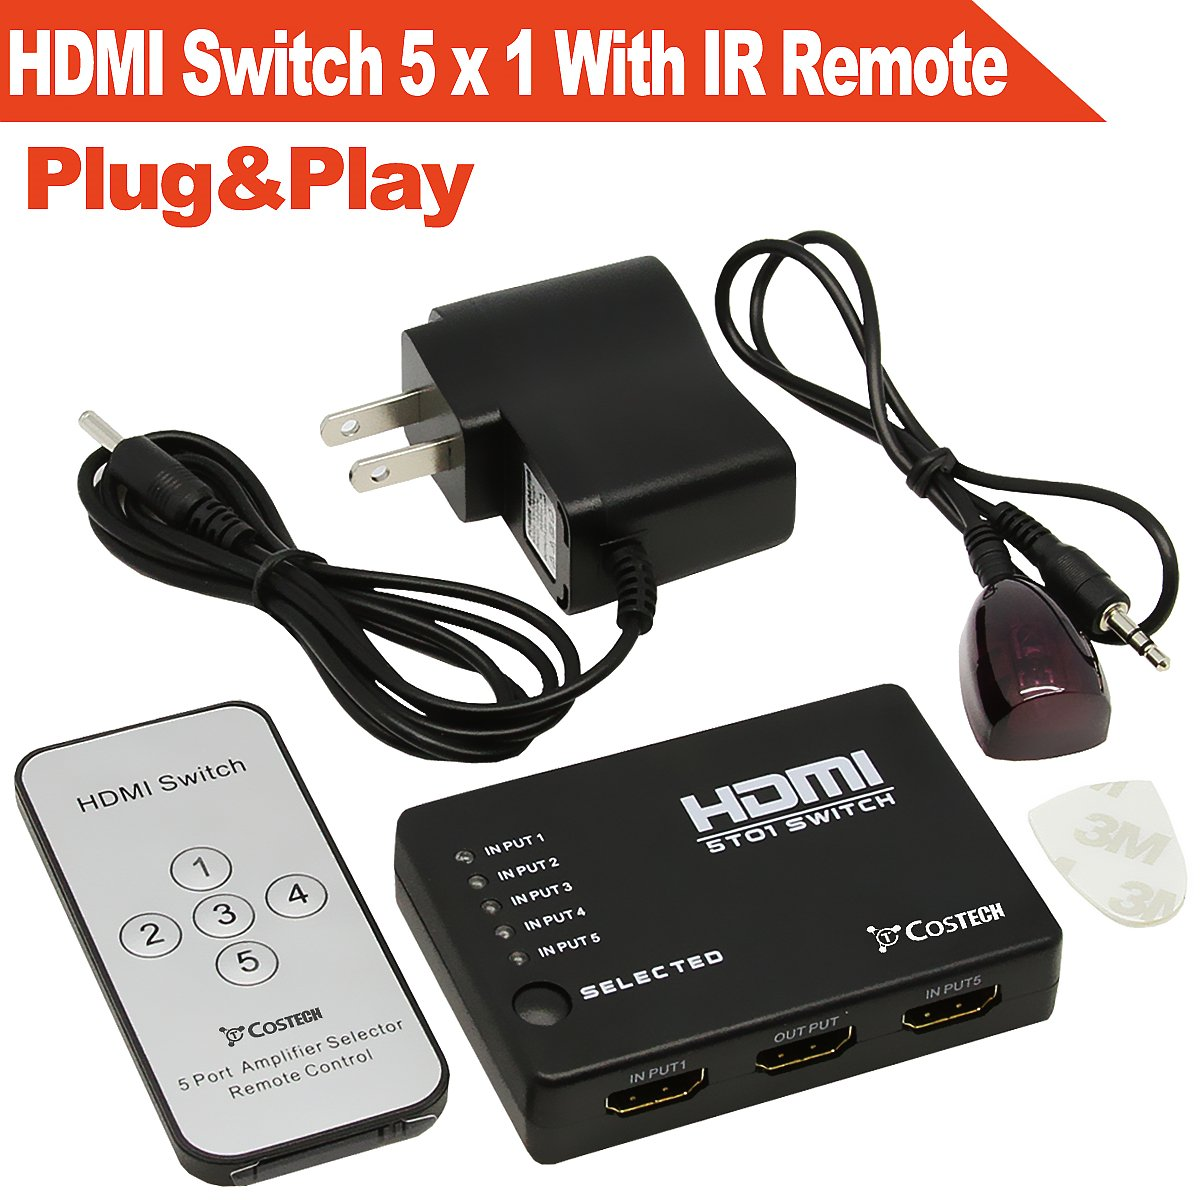 Top 10 Best Hdmi Switchers With Ir Remote Reviews 2019 2020 On Switch 5 In 1 Output Splitter Hub Costech 5x1 Hd 1080p Plug And Play Auto Control Ac Charger Supports